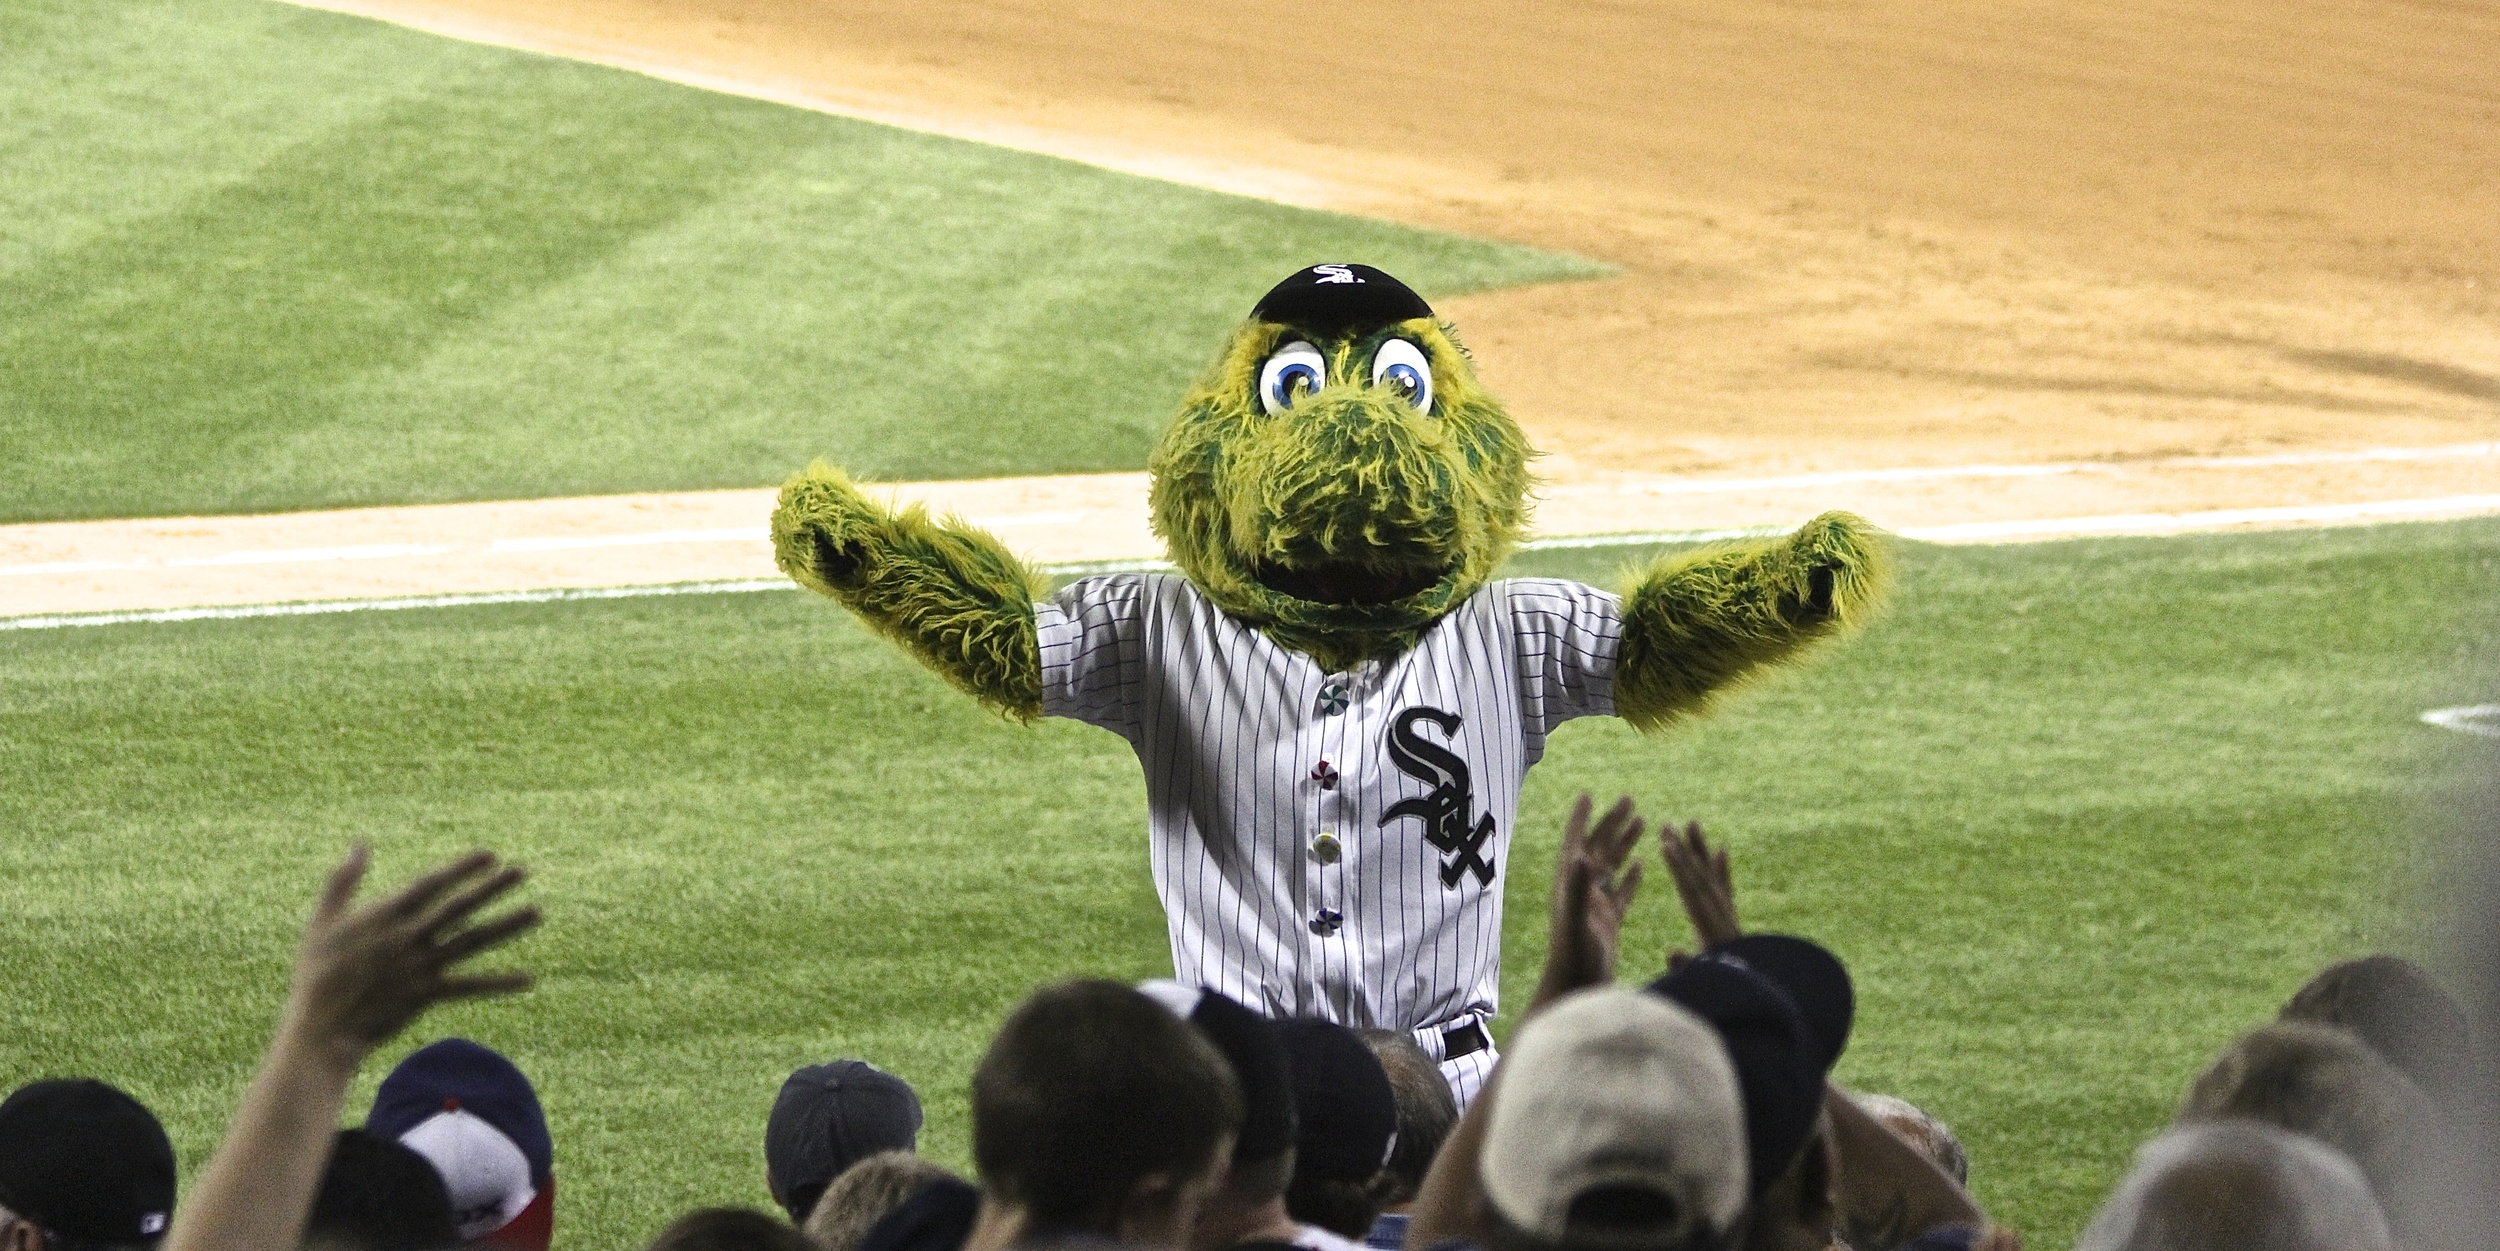 Southpaw fires up the crowd